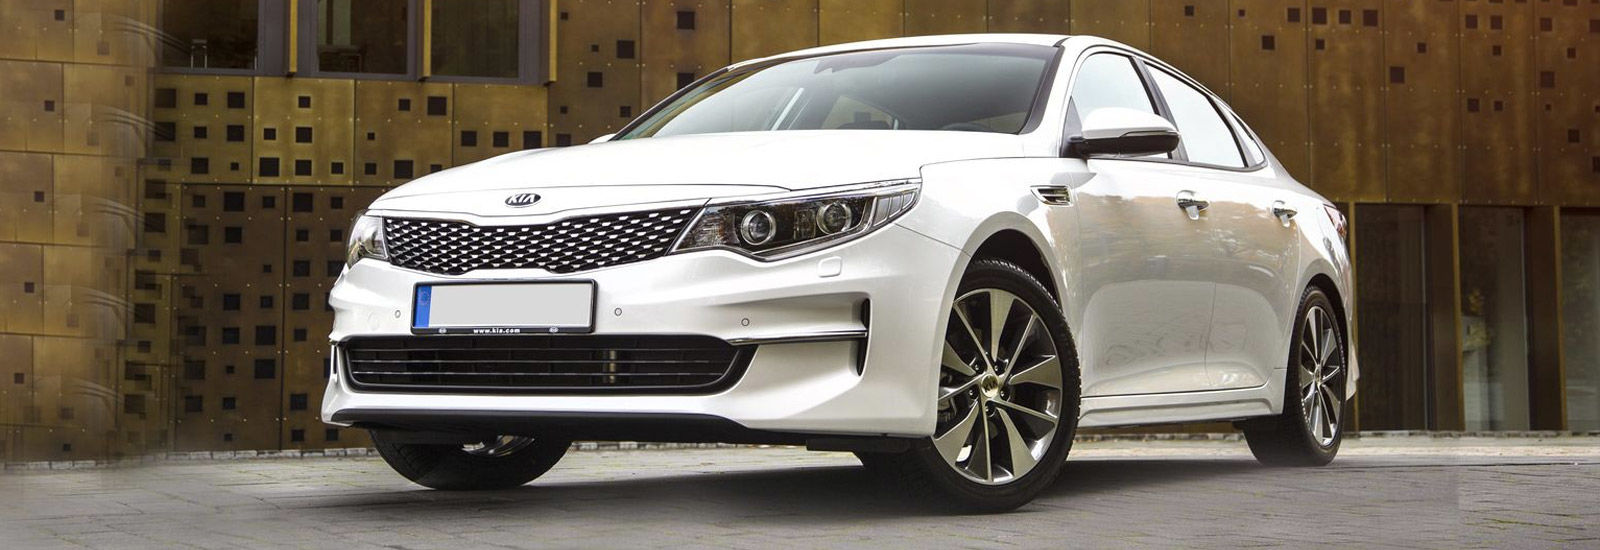 kia optima sportswagon sizes dimensions guide carwow. Black Bedroom Furniture Sets. Home Design Ideas